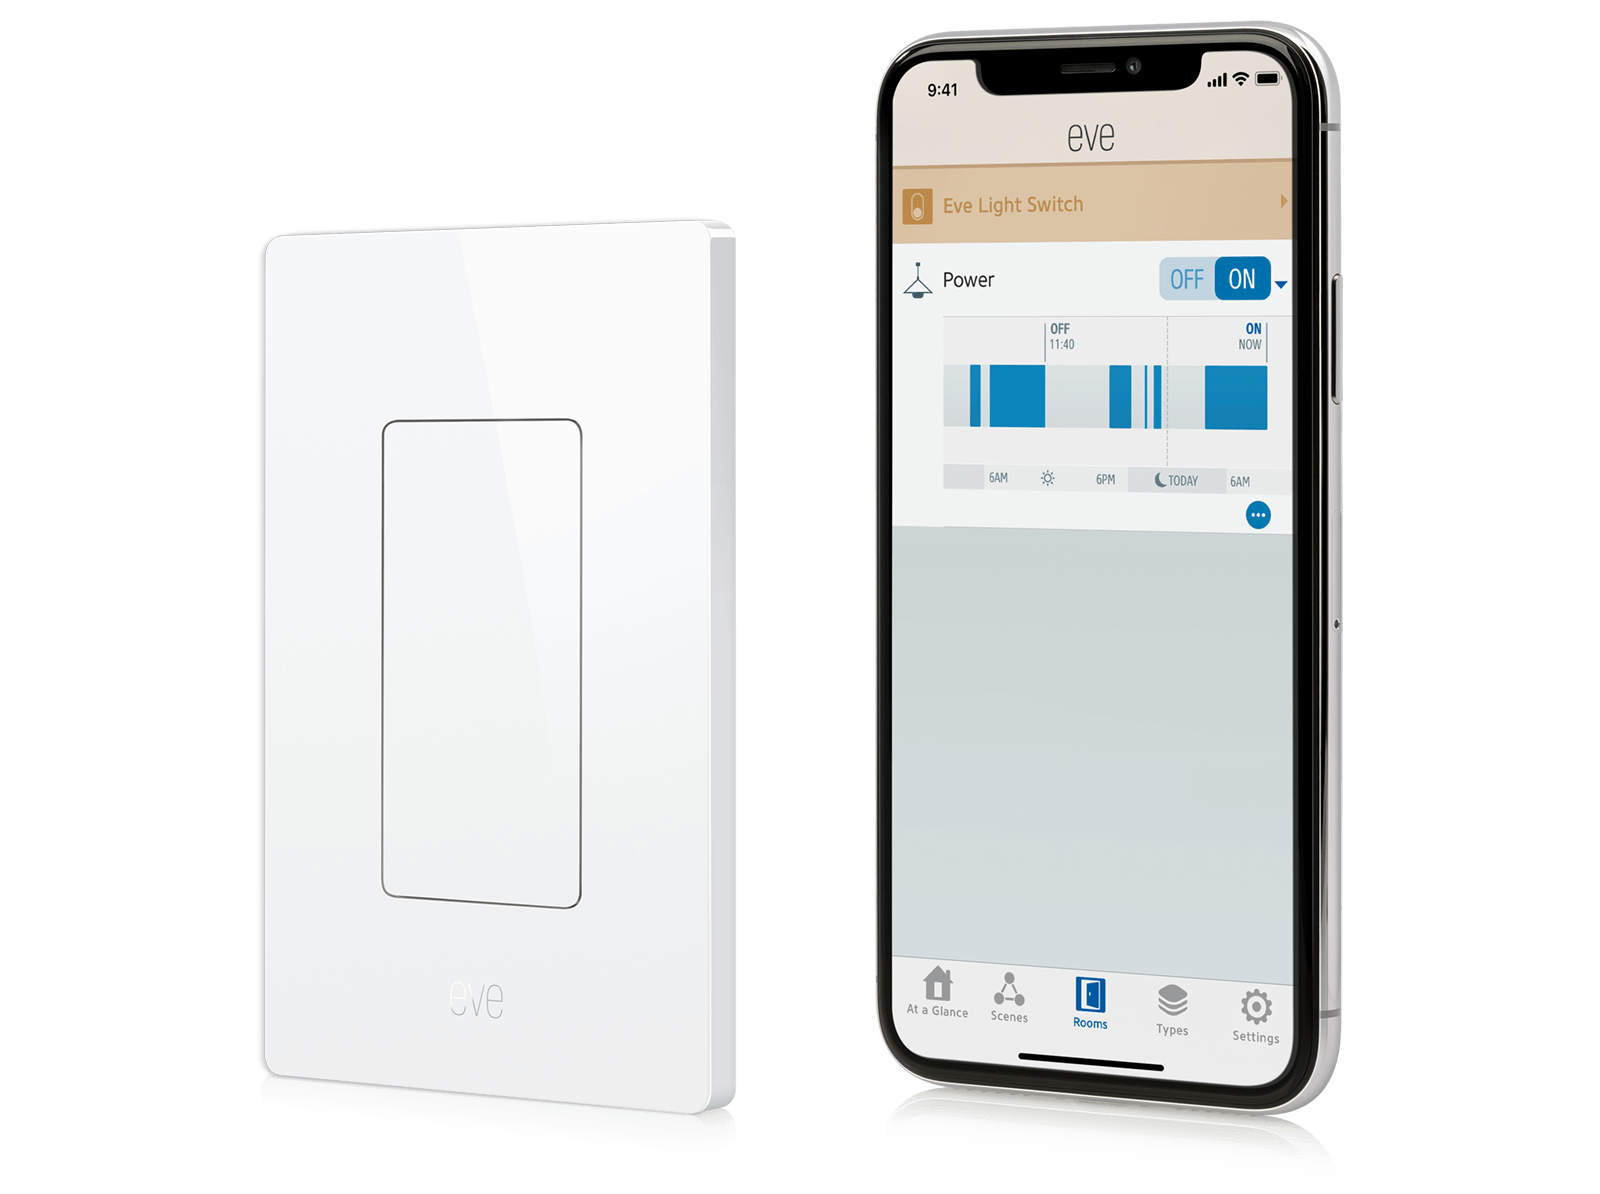 Eve Light Switch Two Way One Bulb Easily Engage Accessories Using The Home App On Your Iphone Ipad Or Ipod Touch And To See Concise Records Gain Insights Enjoy Full Control Of